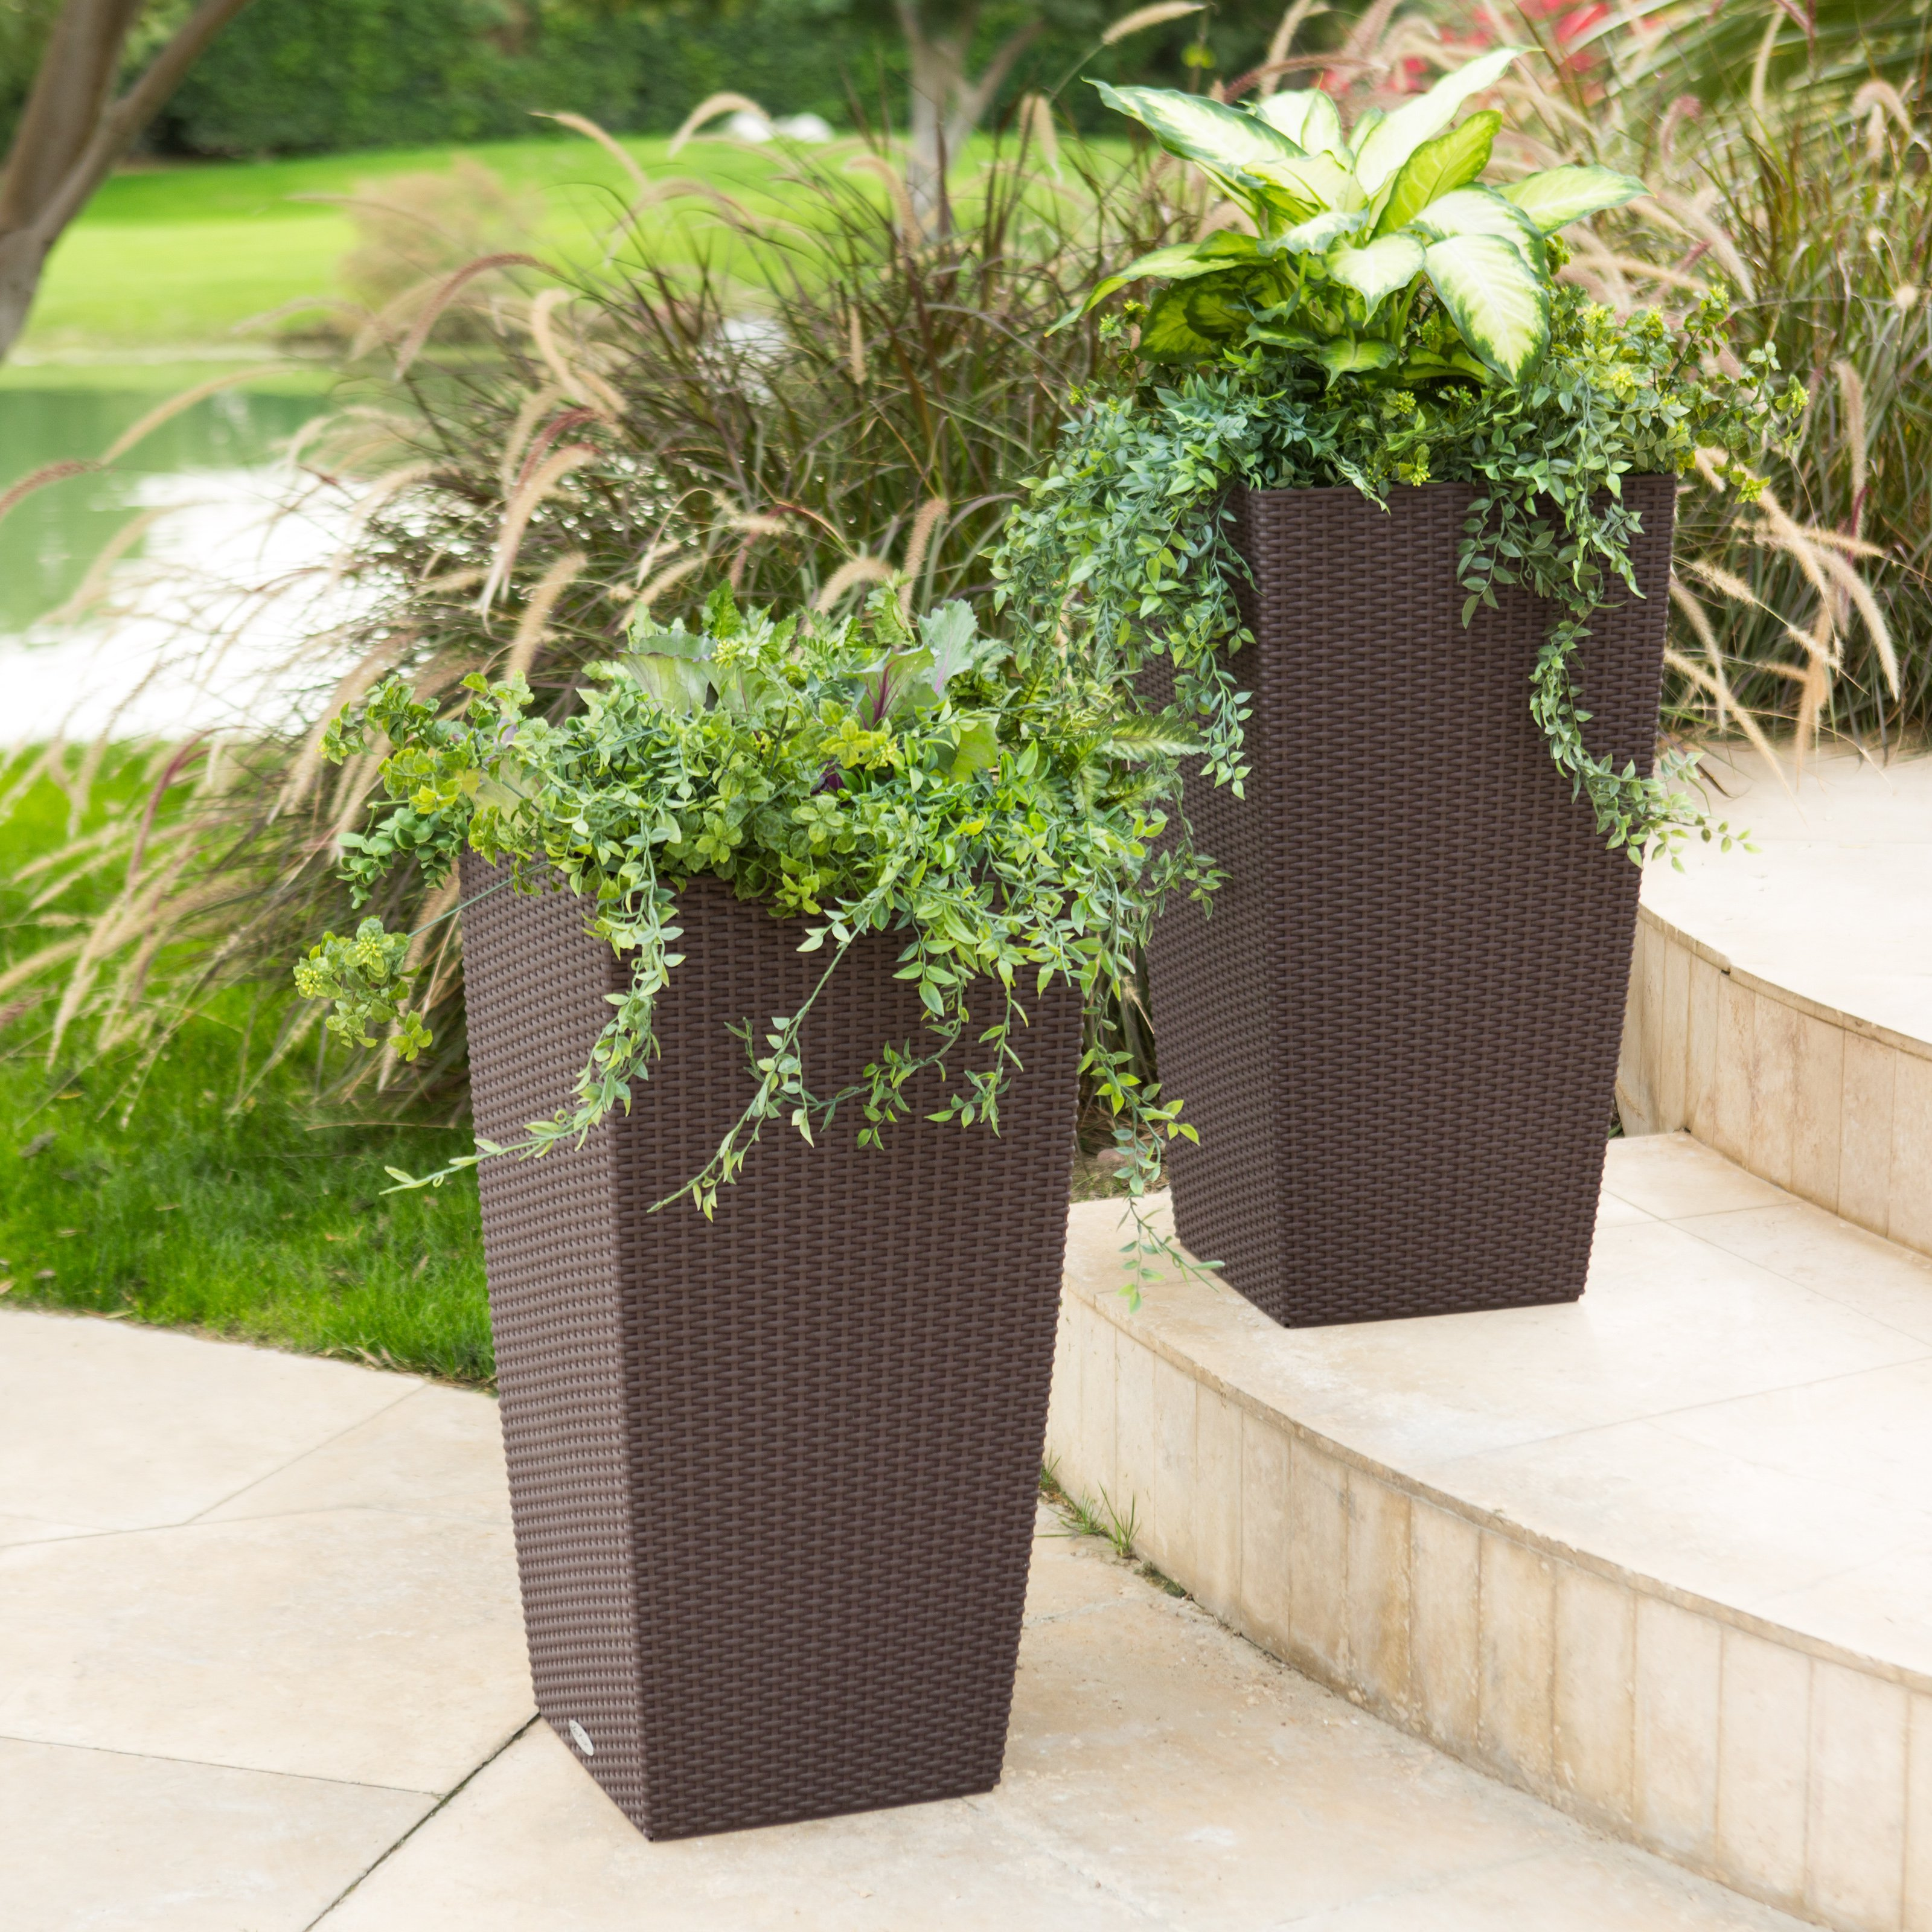 The big list of self watering planters for stylish gardening anywhere - Square Lechuza Cubico Cottage Selfwatering Resin Planter